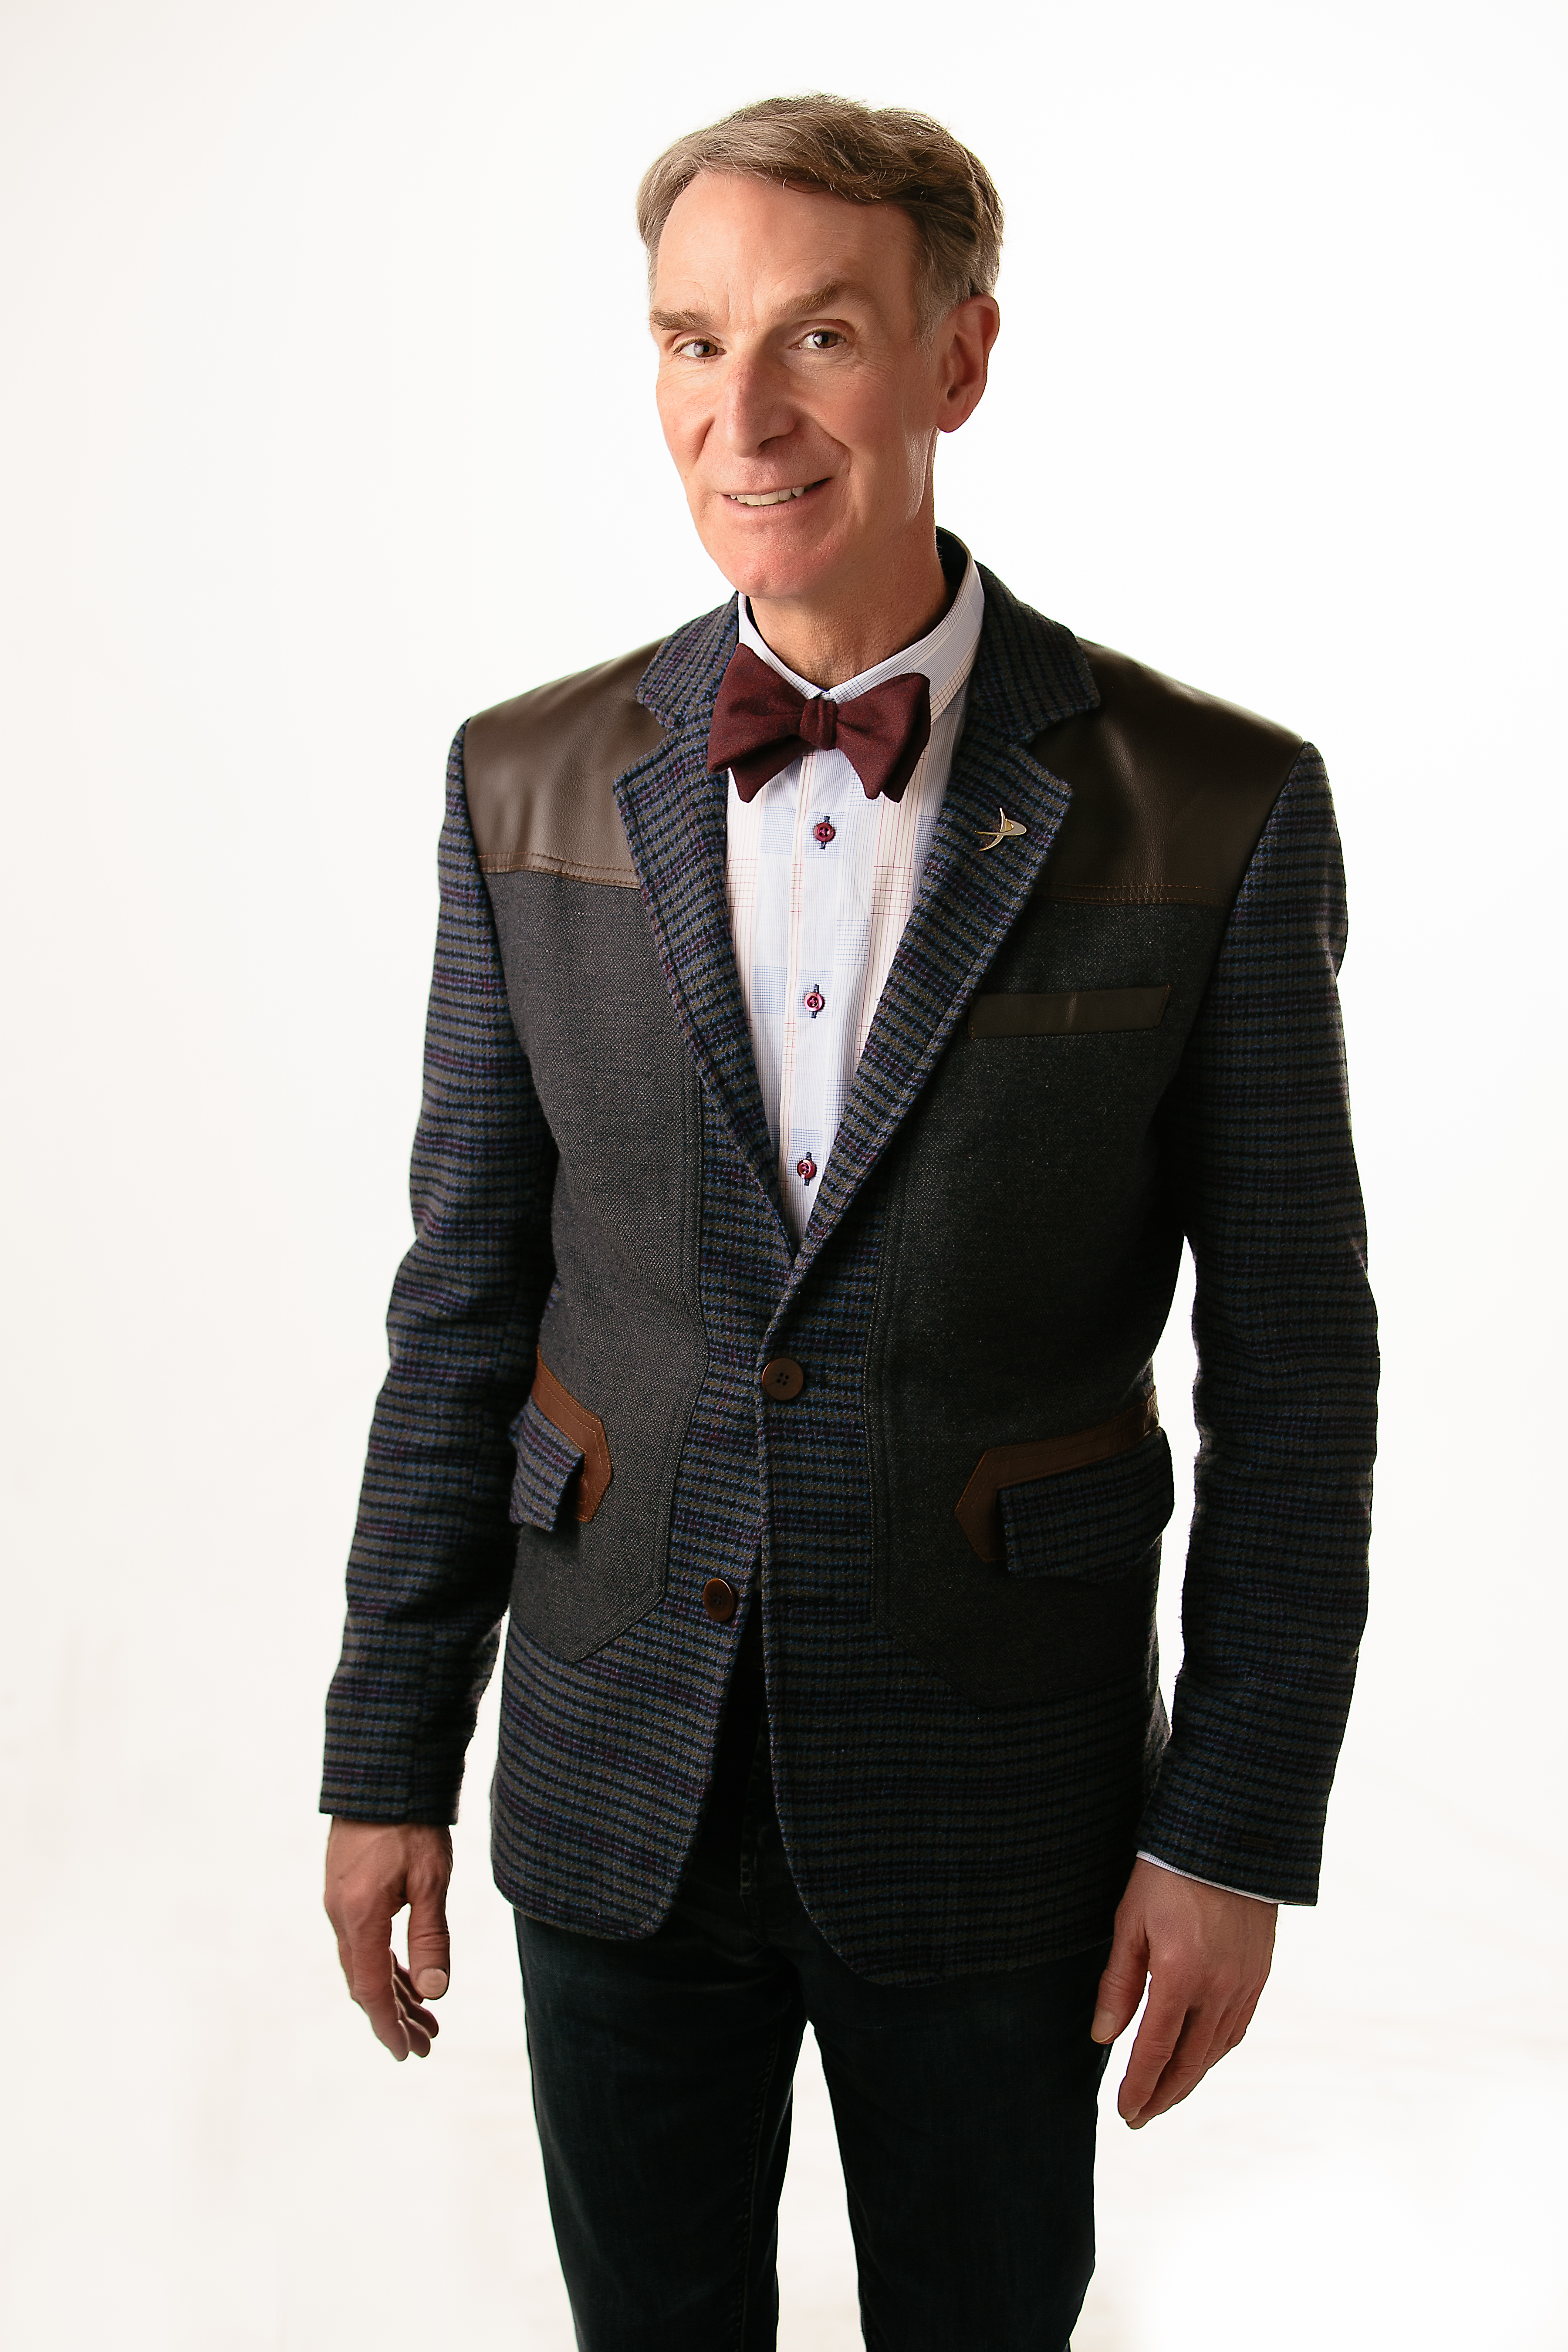 Bill Nye, Space Communicator Award Recipient